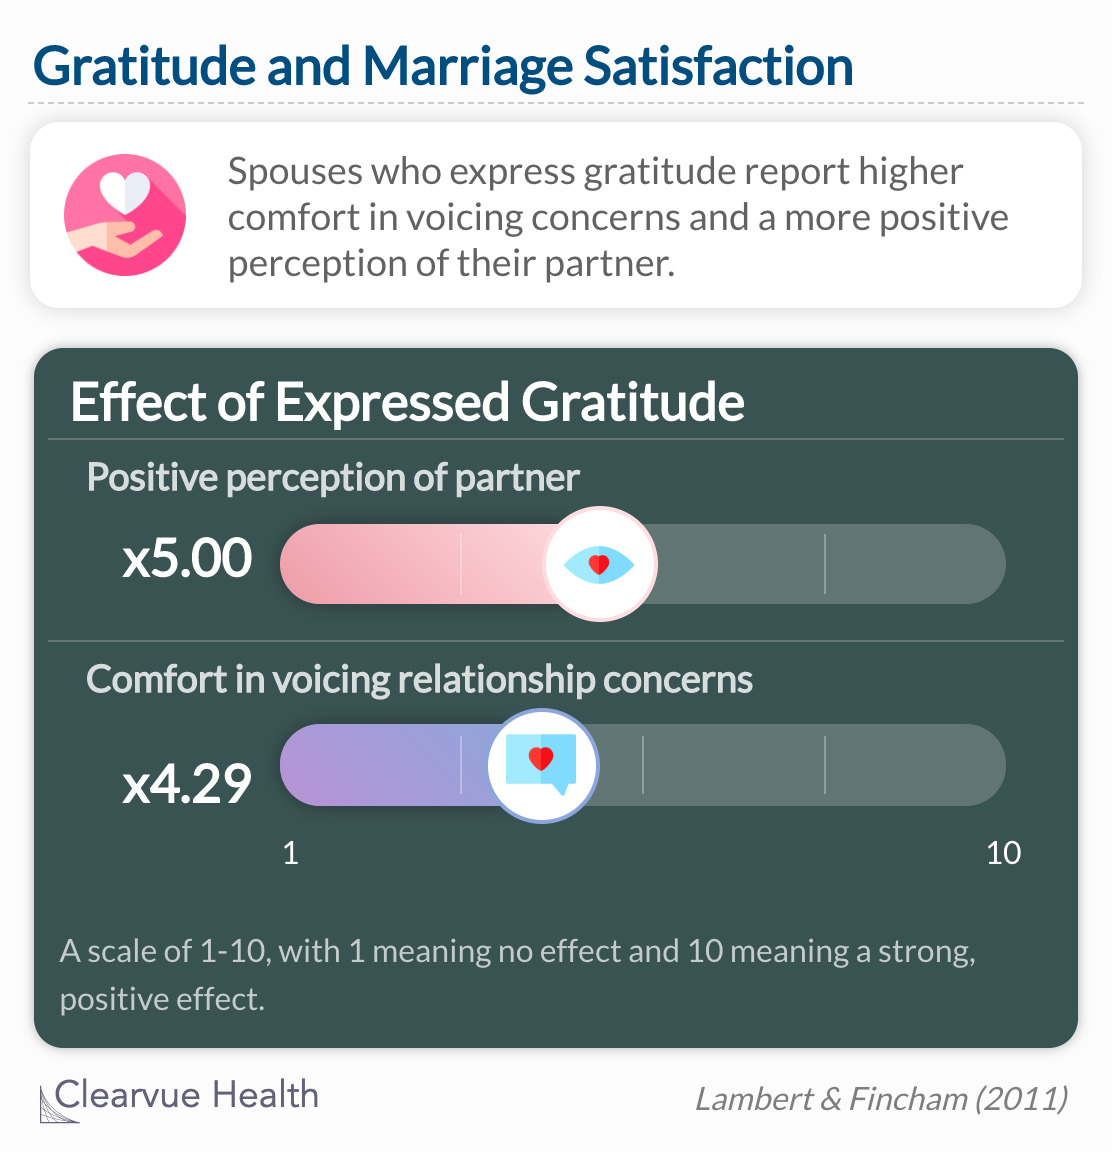 participants assigned to express gratitude reported higher comfort voicing concerns and more positive perception of partner than did control participants